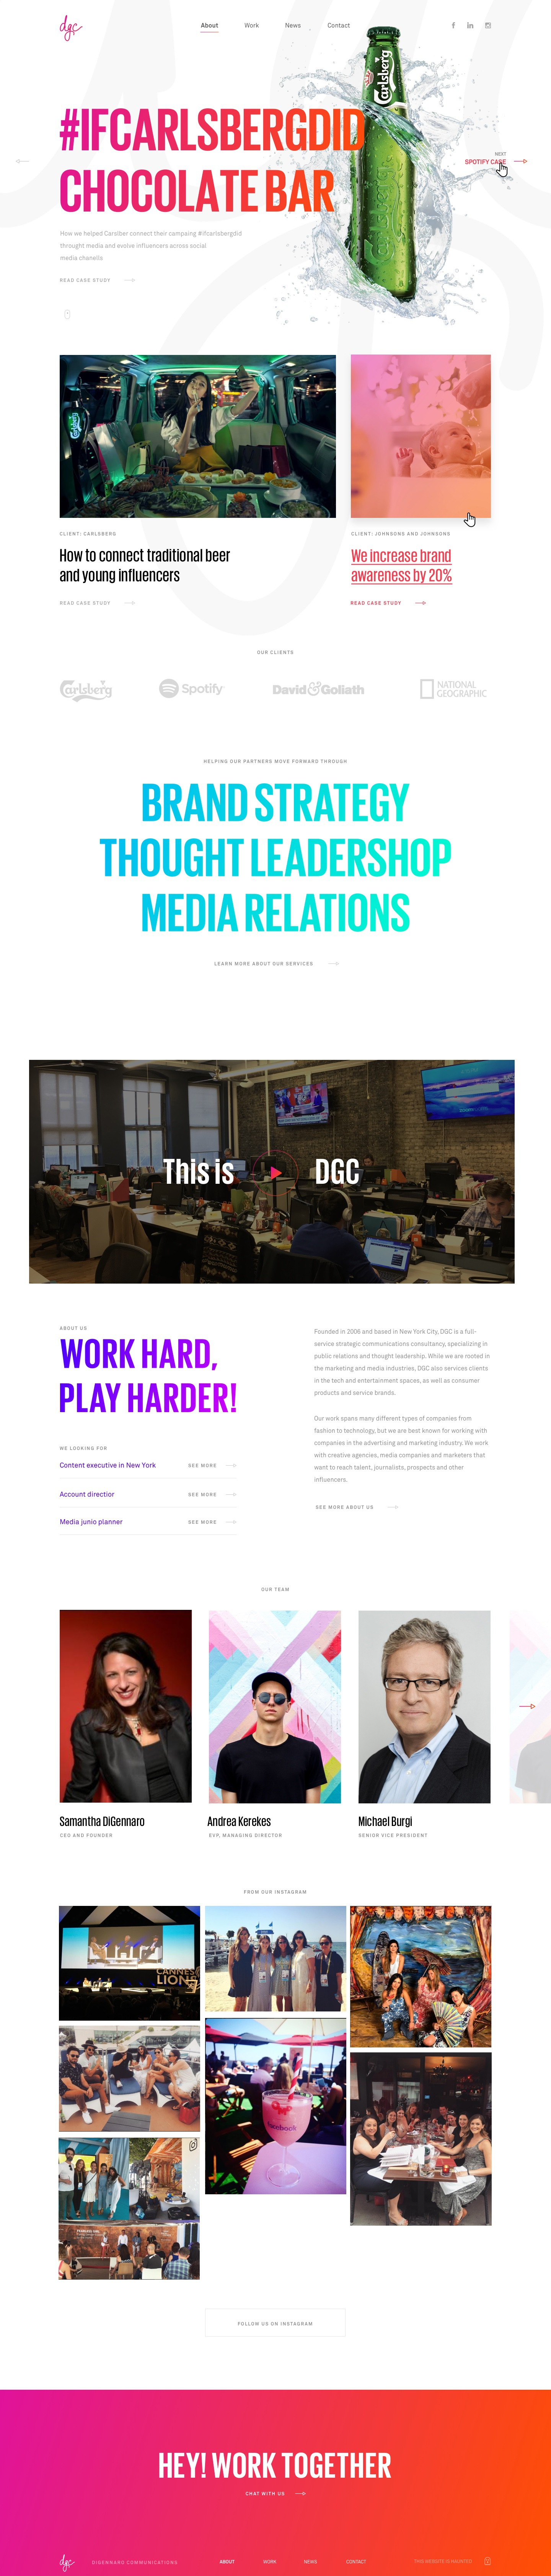 Redesign our comms agency website!